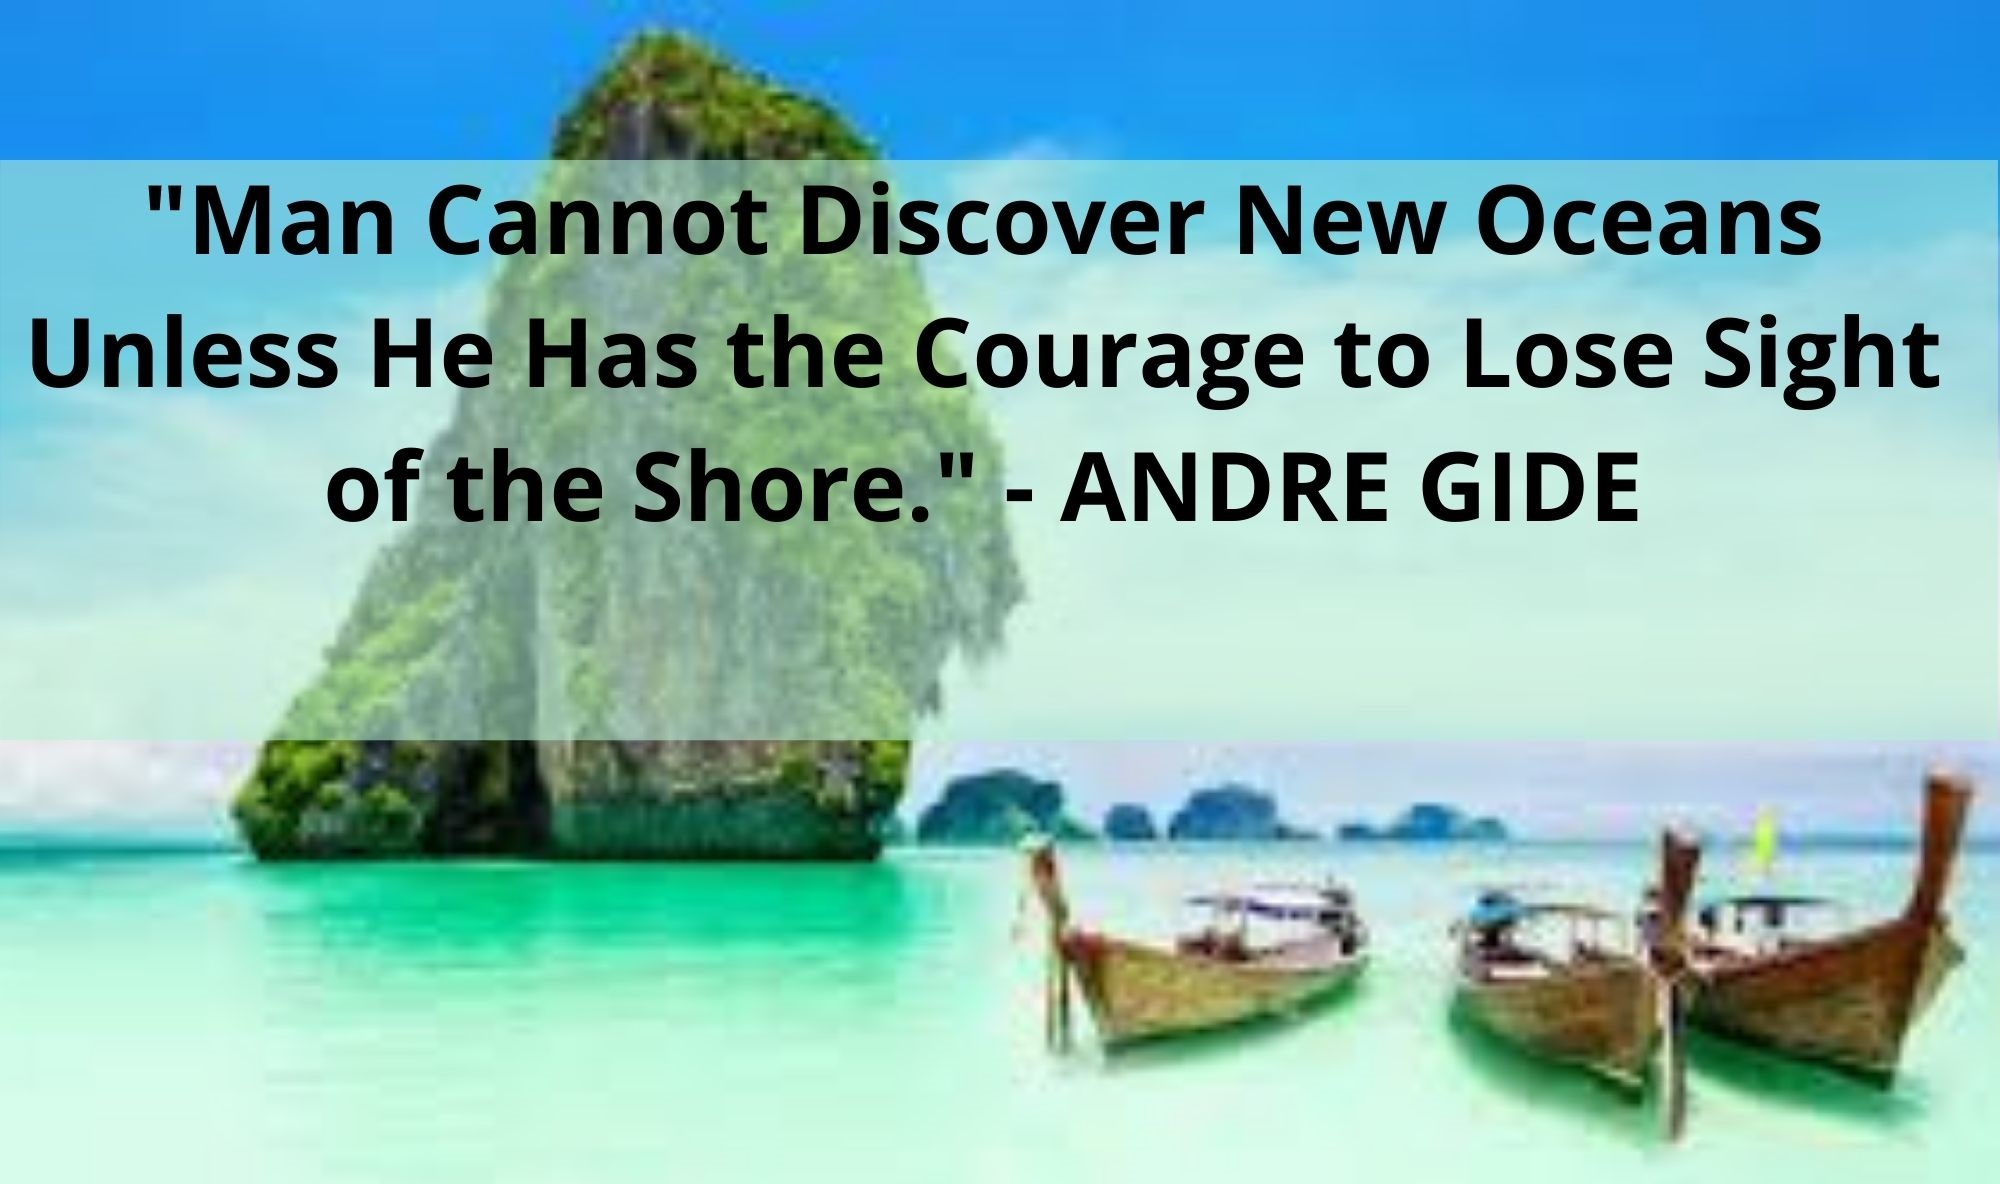 Man Cannot Discover New Oceans Unless He Has the Courage to Lose Sight of the Shore. ANDRE GIDE